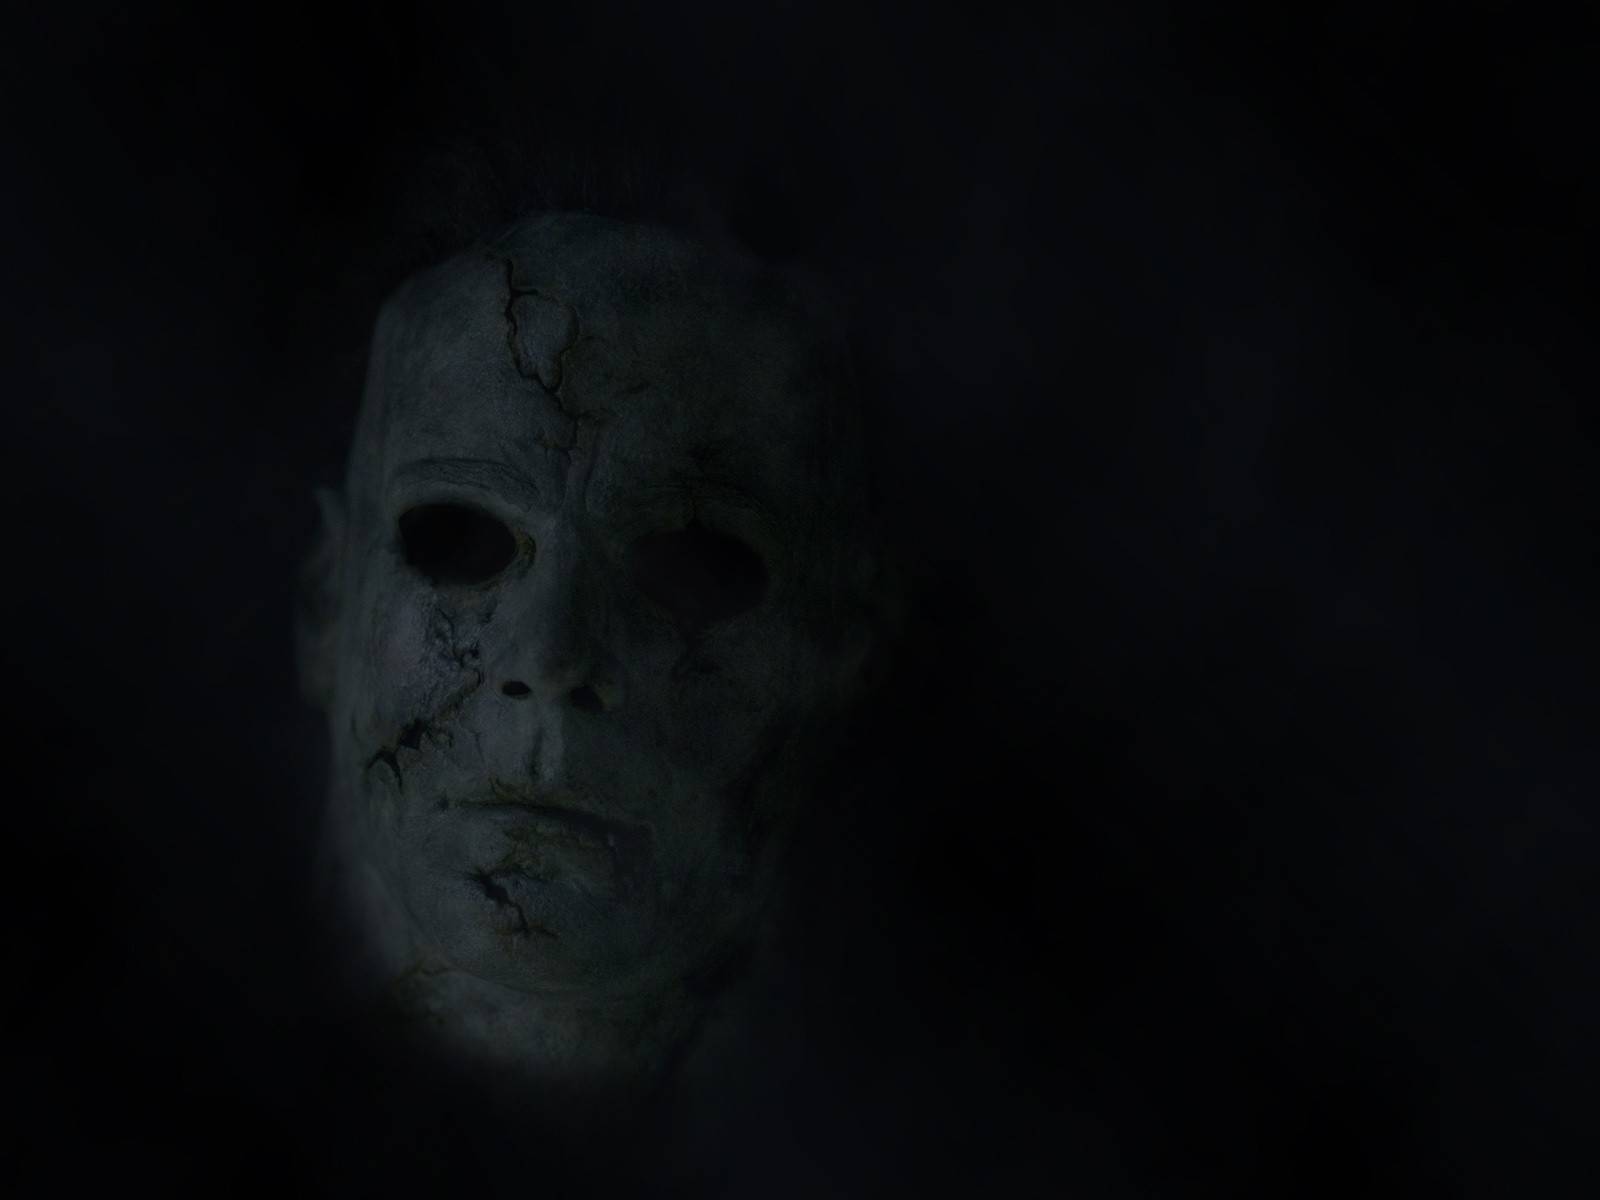 halloween michael myers wallpapers - wallpaper cave